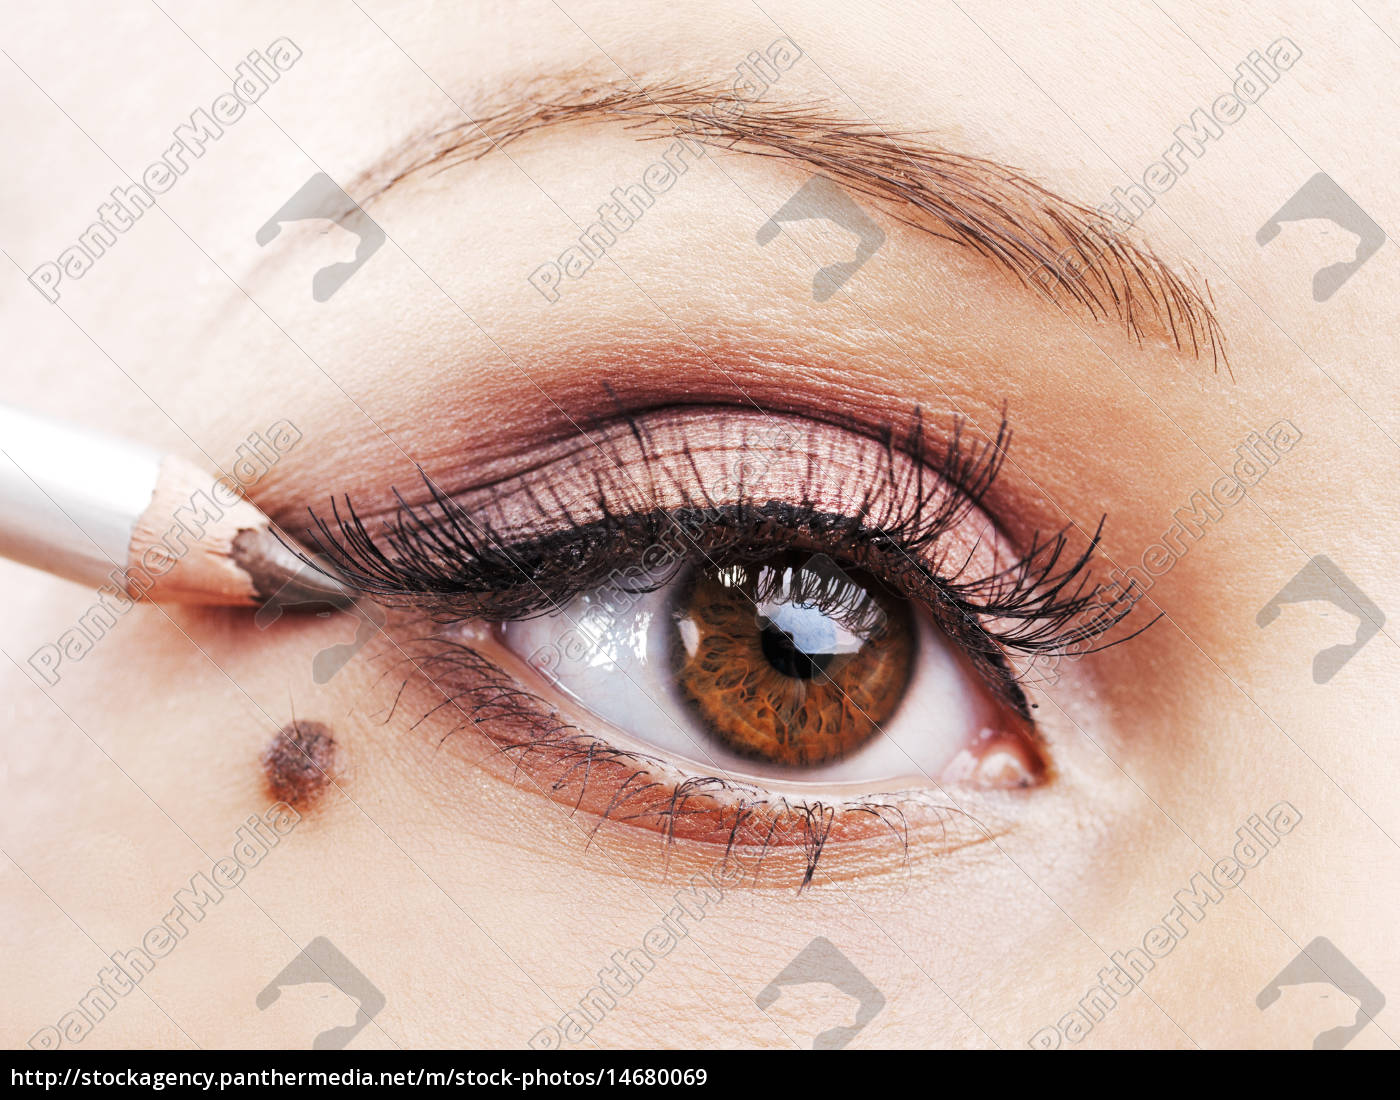 augen-make-up, augen-make-up, augen-make-up, applikation, eye-make-up, applikation, eye-make-up, applikation, von, augen-make-up, applikation, von - 14680069